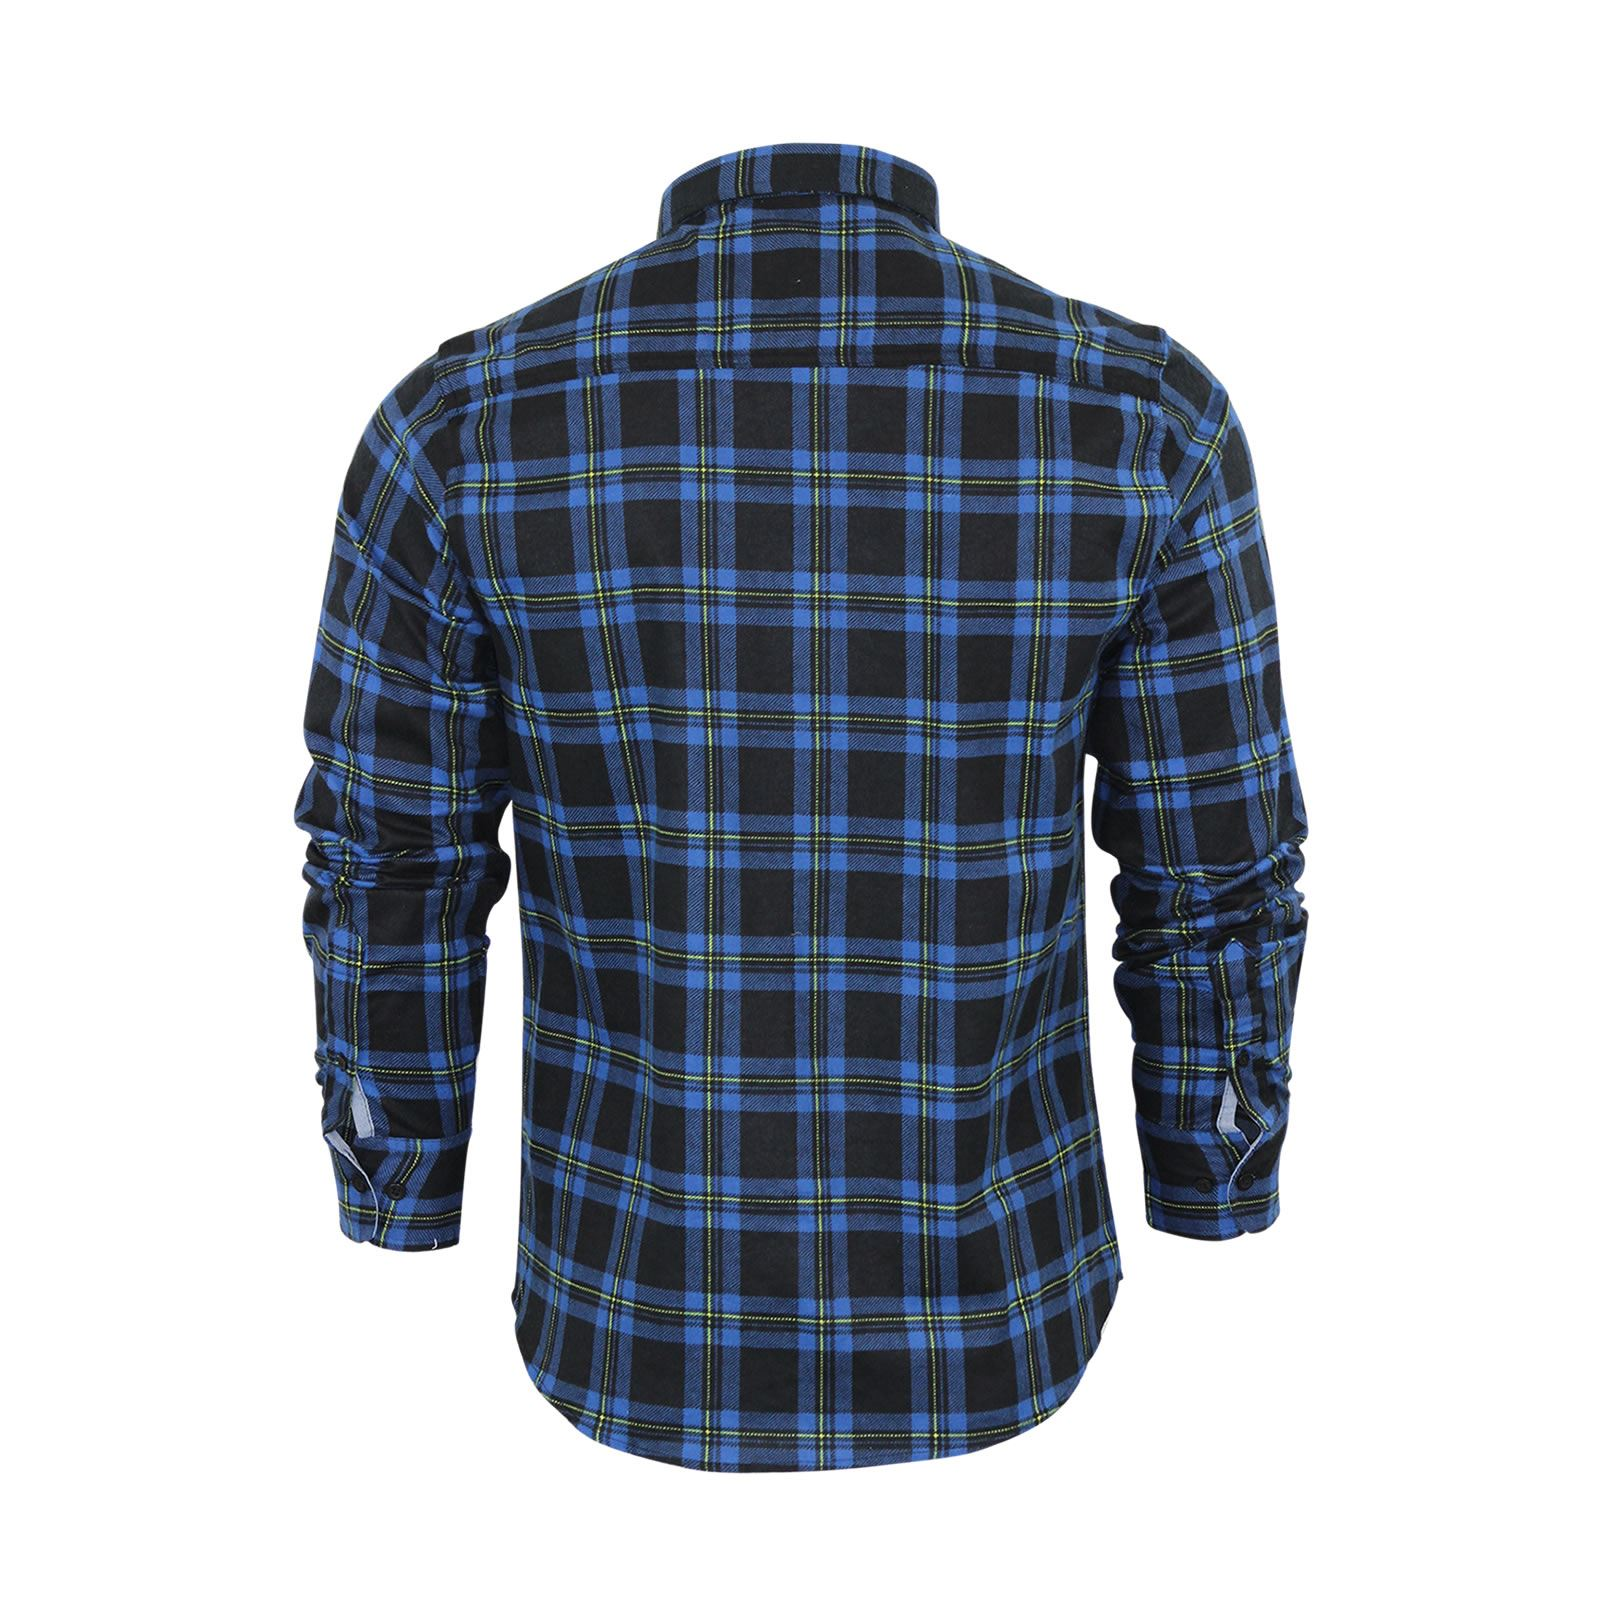 Mens-Check-Shirt-Brave-Soul-Flannel-Brushed-Cotton-Long-Sleeve-Casual-Top thumbnail 69